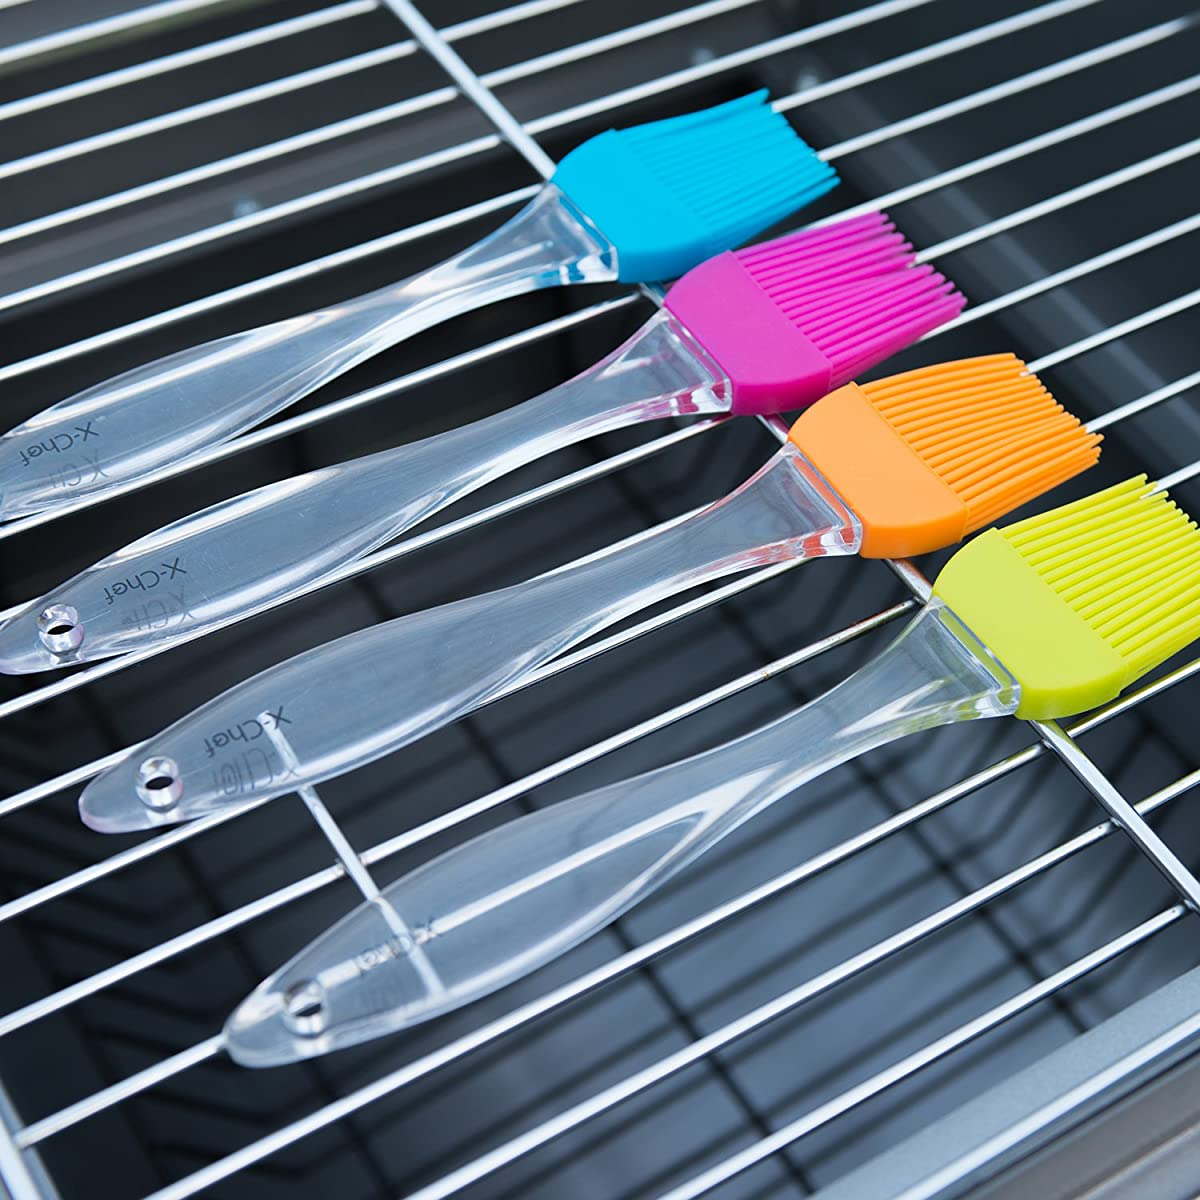 Pastry Brush Silicone, X-Chef BBQ Brushes Basting Brush Set Heat Resistant for Kitchen Grilling Camping Dishwasher Safe (Set of 4)